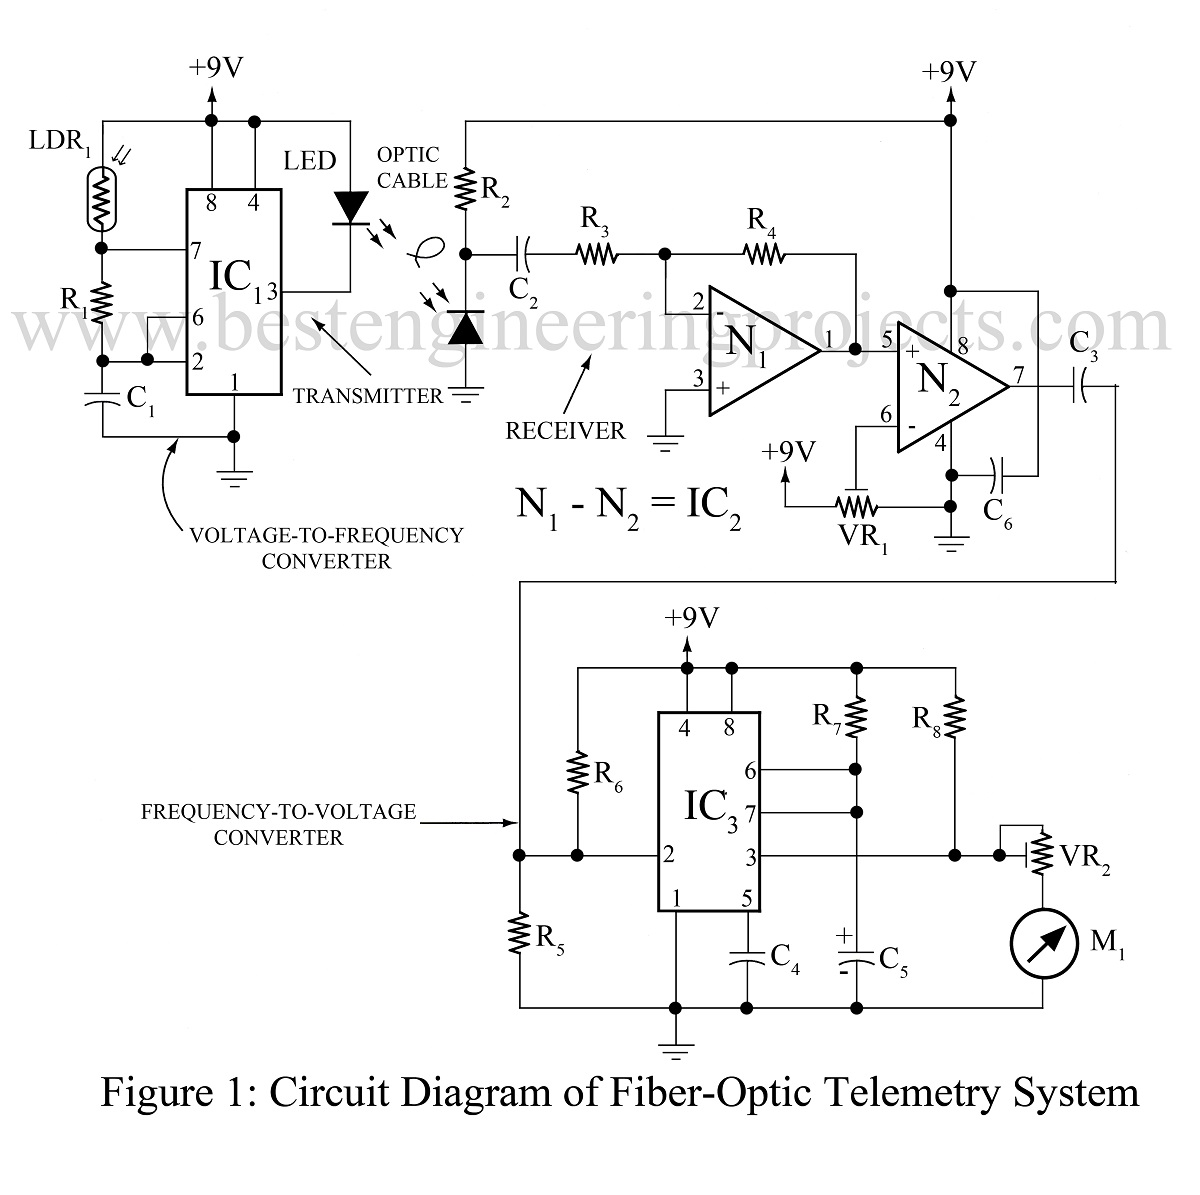 50 Top 555 Timer Ic Projects Engineering Using Circuit Diagrams Image Fiber Optic Telemetry System Ne555 Diagram